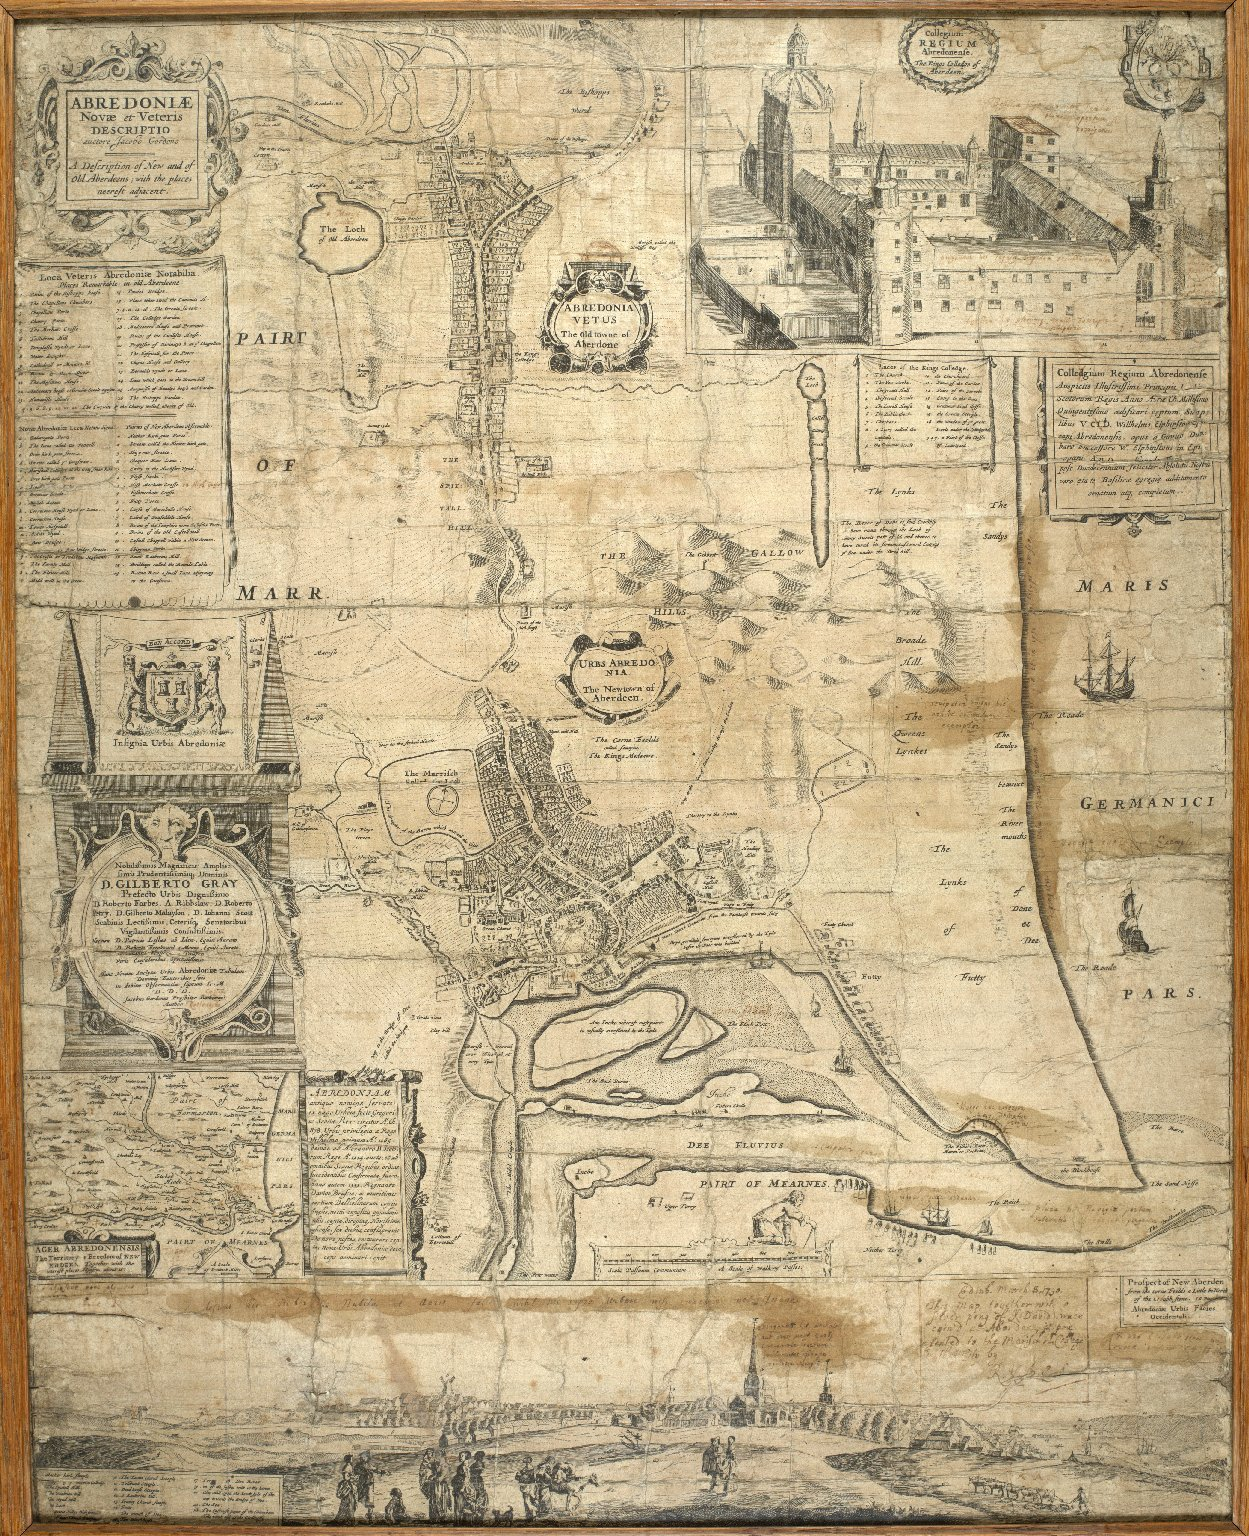 Abredoniae novae et veteris descriptio = A description of new and of old Aberdeens, with the places neerest adjacent / auctore Jacobo Gordono. [1 of 1]